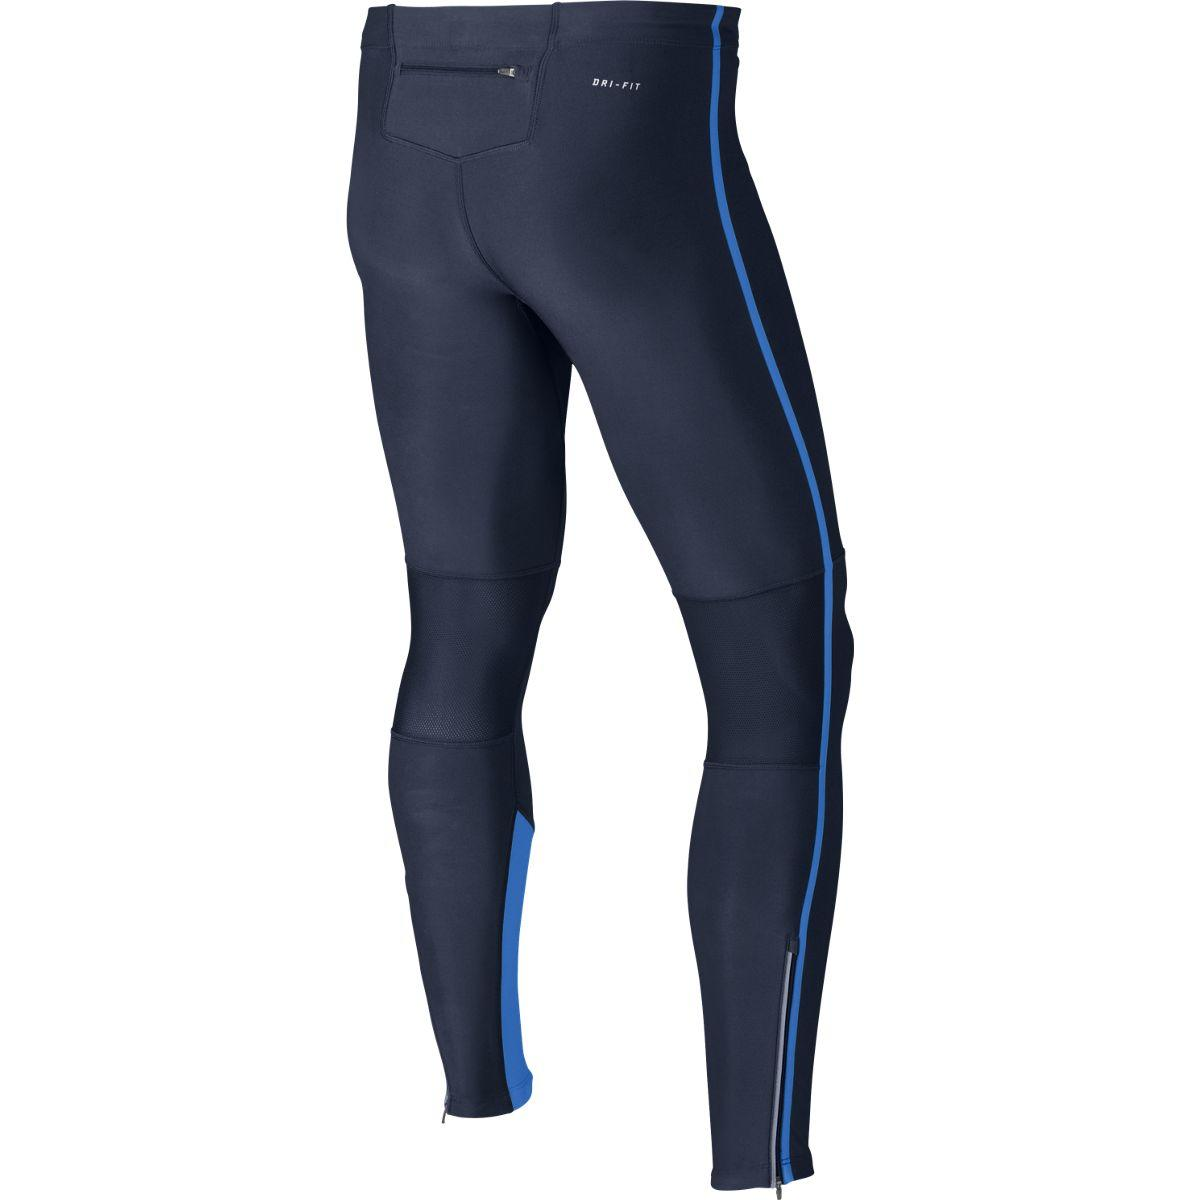 639b77f5bba275 Nike Mens Tech Running Tights - Midnight Navy - Tennisnuts.com